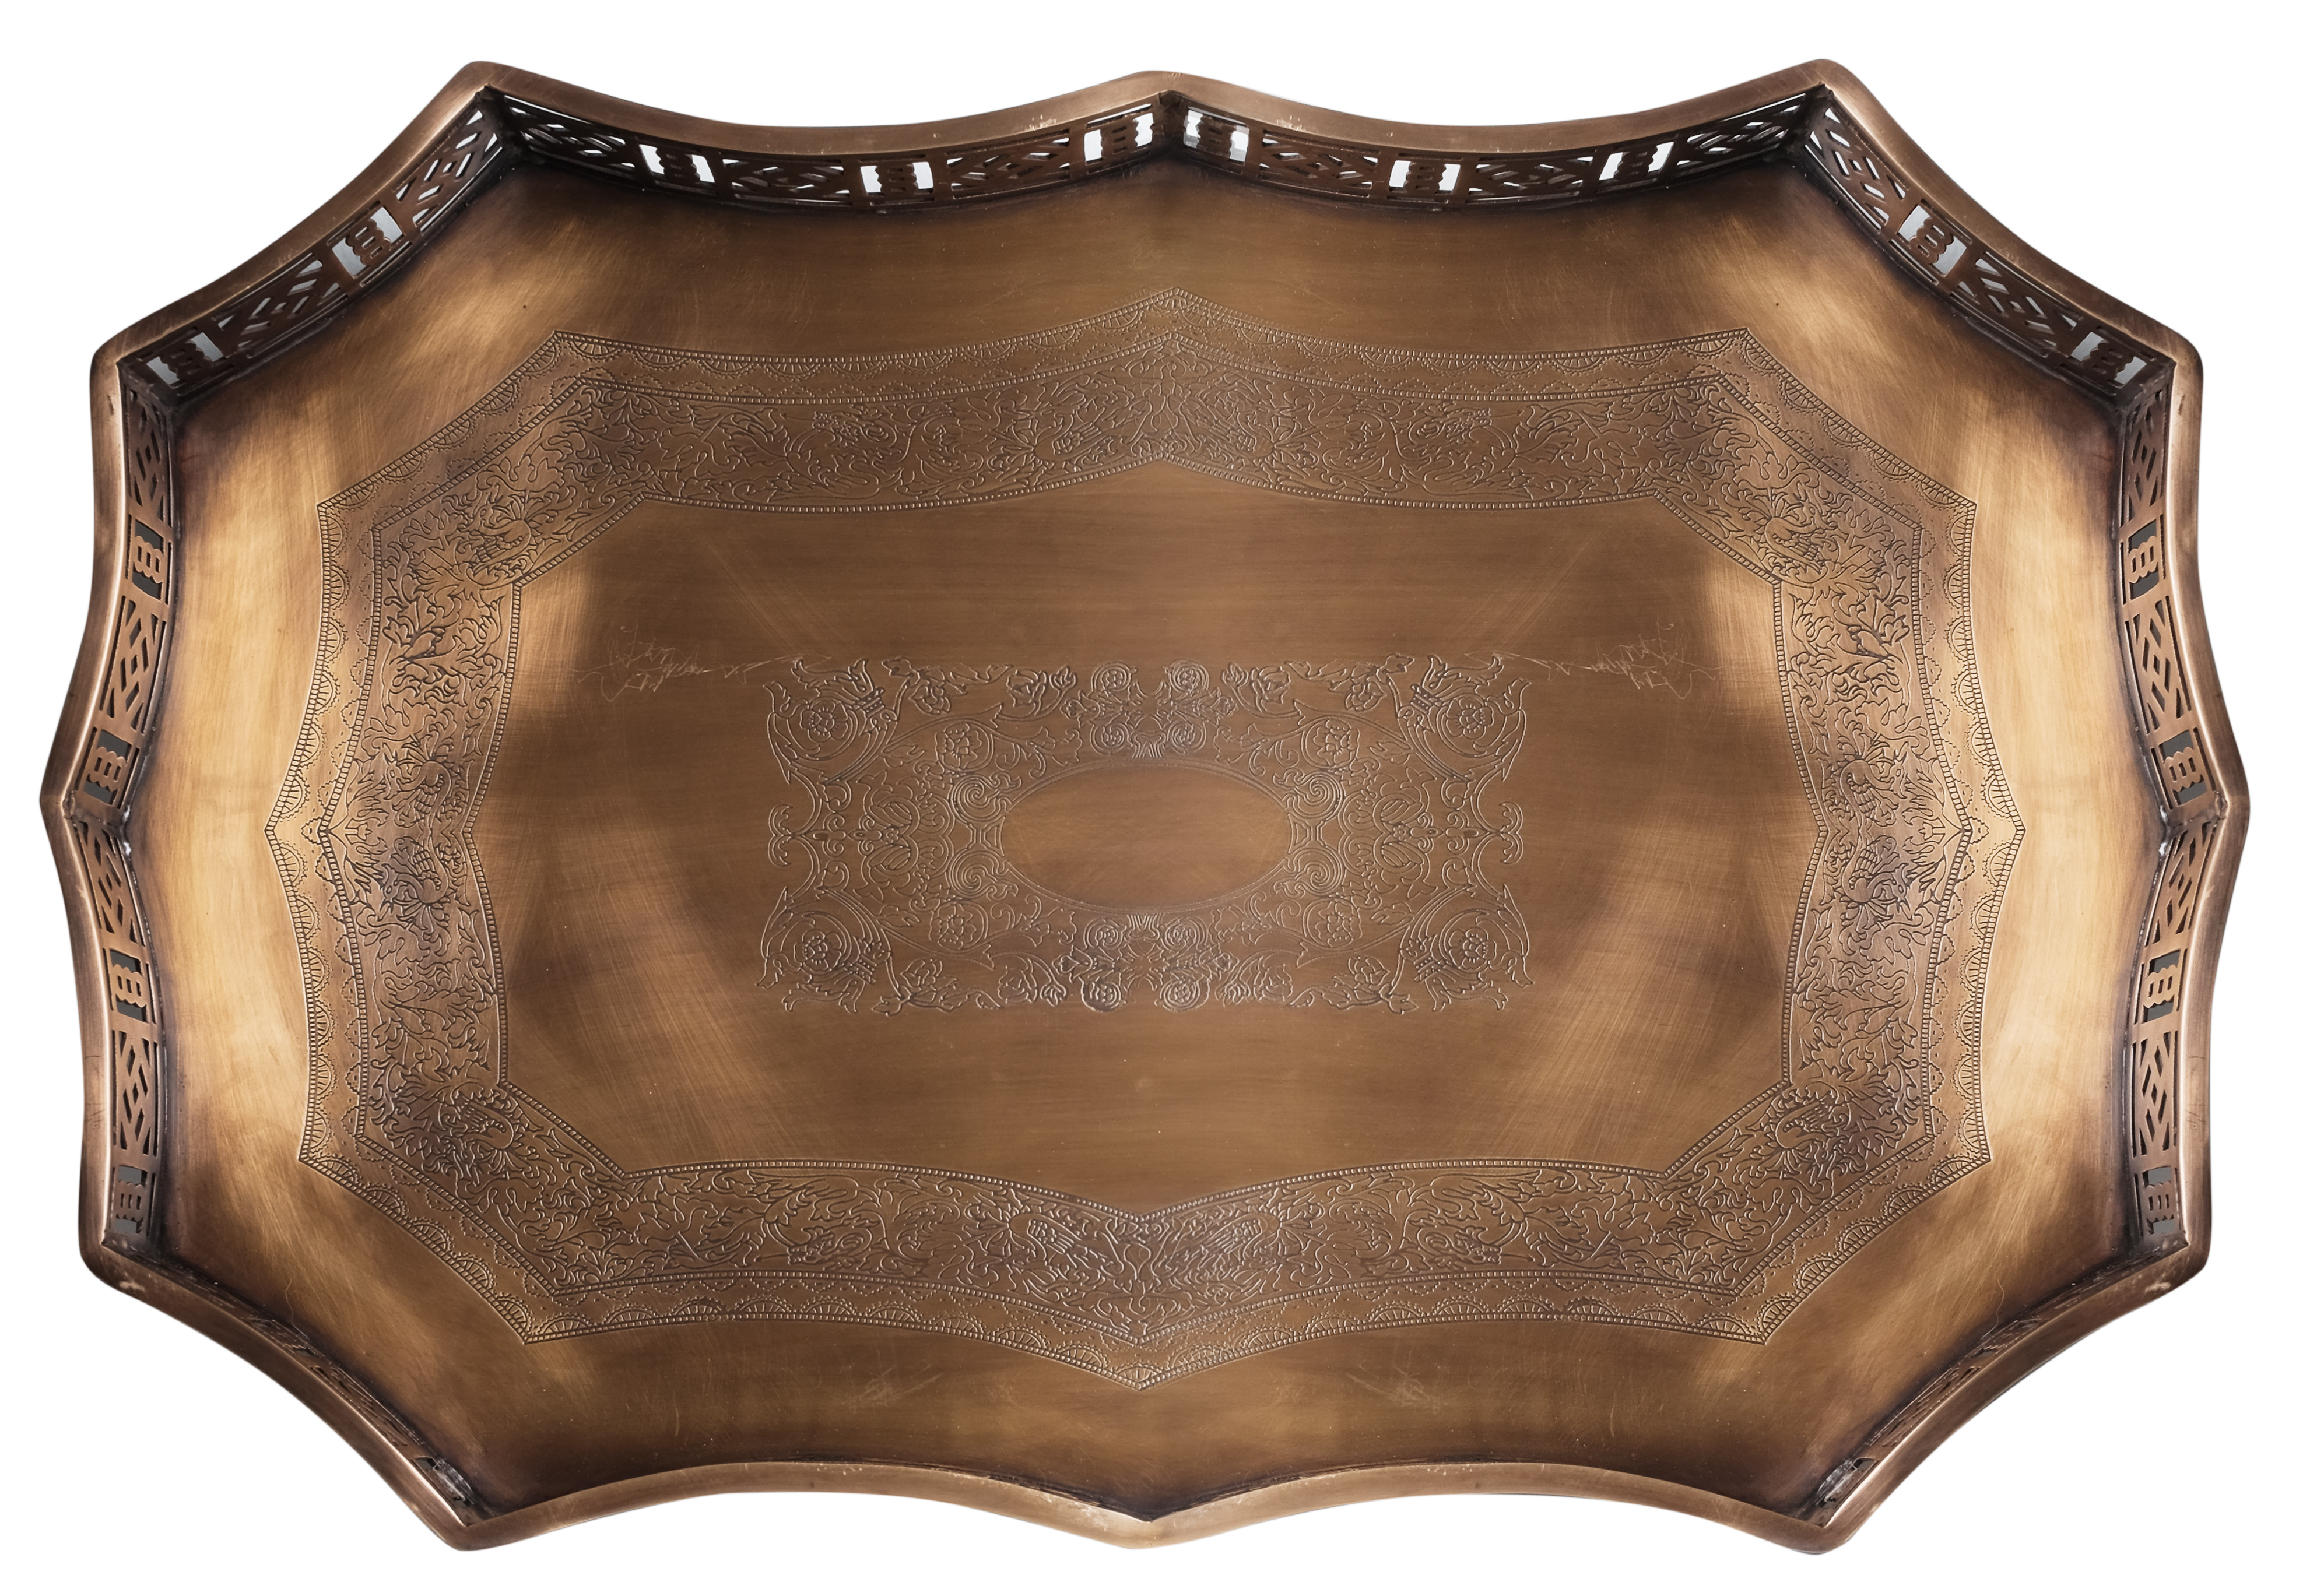 NEW! Incredible large Chippendale gallery tray in antique brass